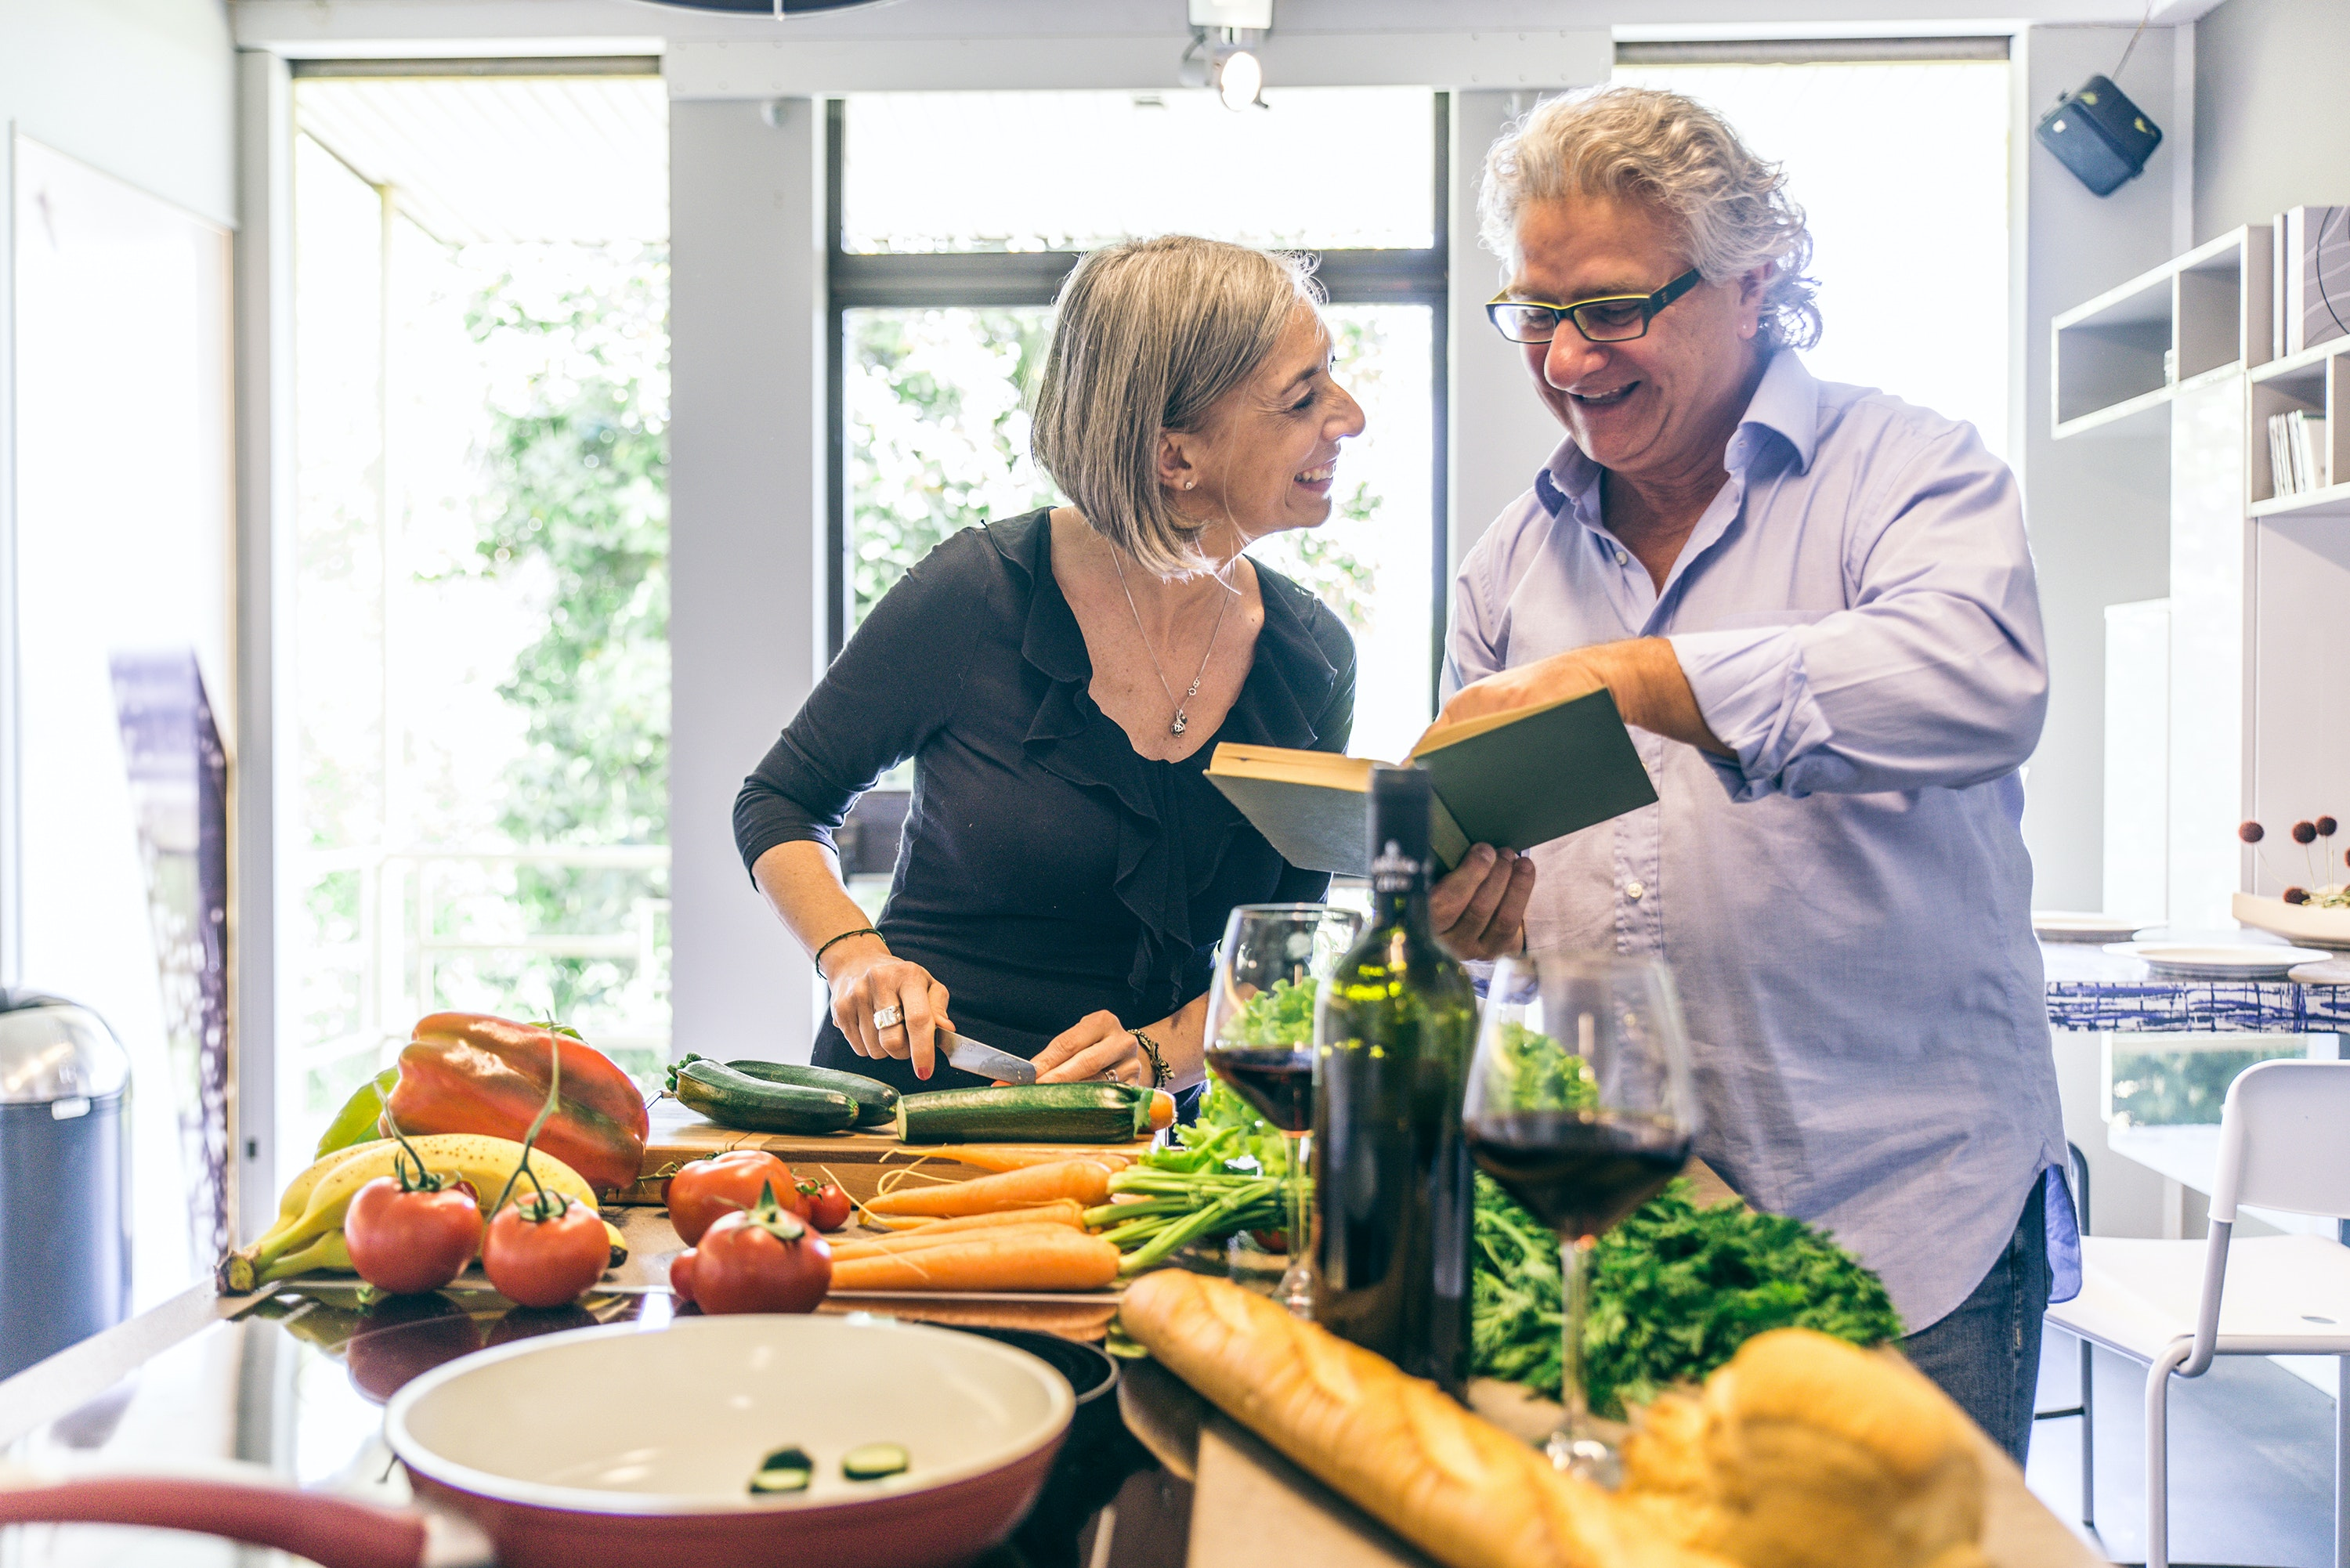 Food as medicine: your brain really does want you to eat more veggies